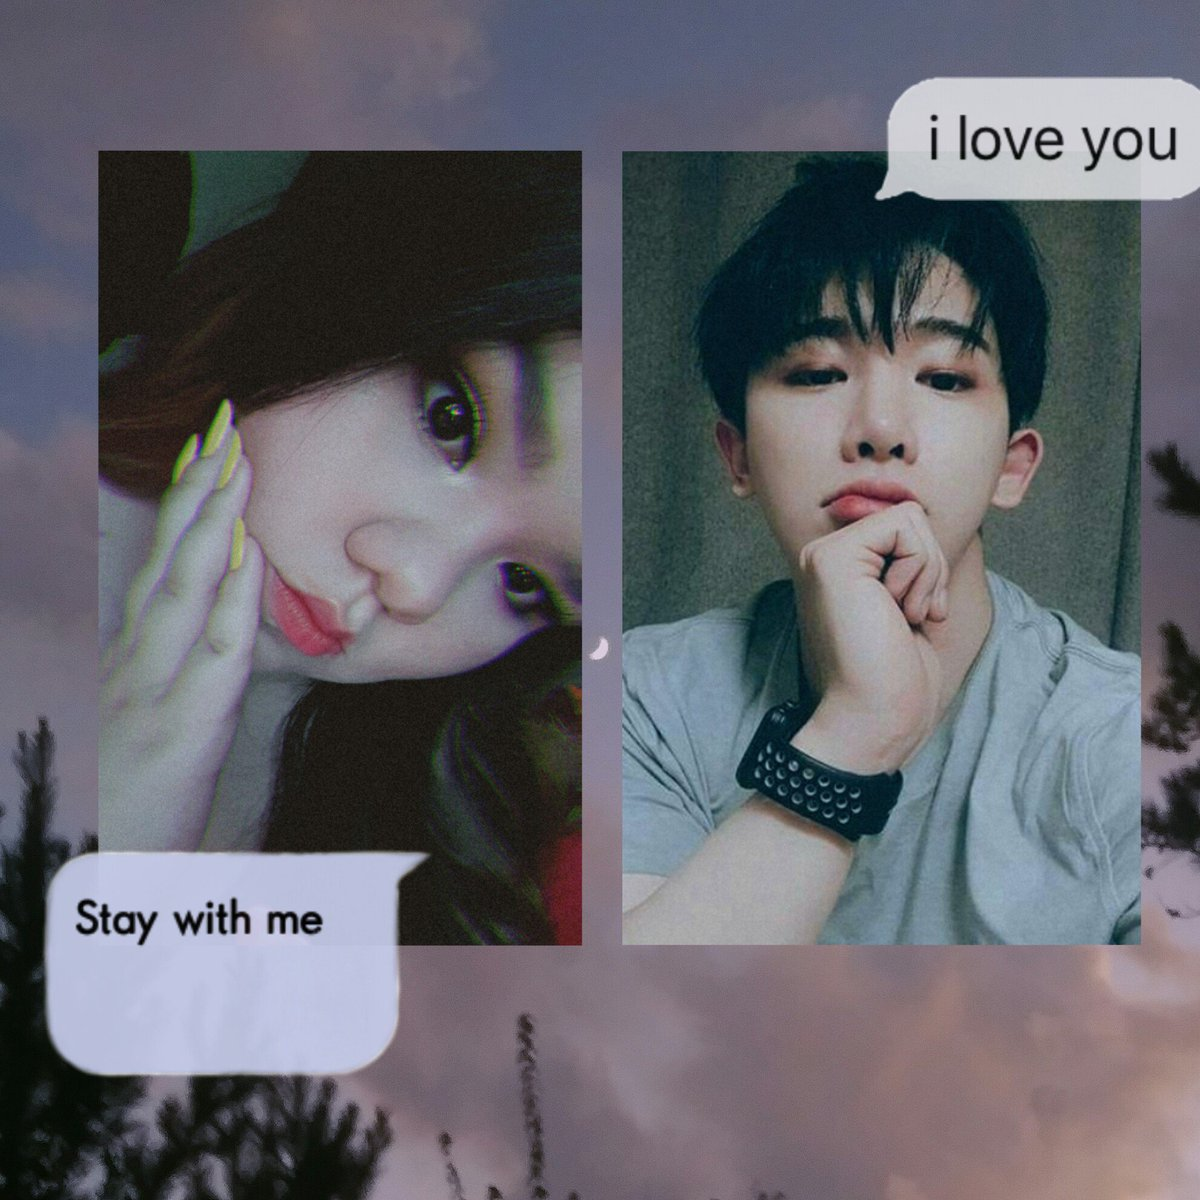 there is no day that I dont think about you, I just want to love and protect you, please come back to my arms that our love is still intact and strong 🏮💜🏮 ✨ #MonbebeSelcaDay ✨ #VoiceForWonho #쓰기_전에_생각해주세요 @OfficialMonstaX #mbbselcaday #mbbsd